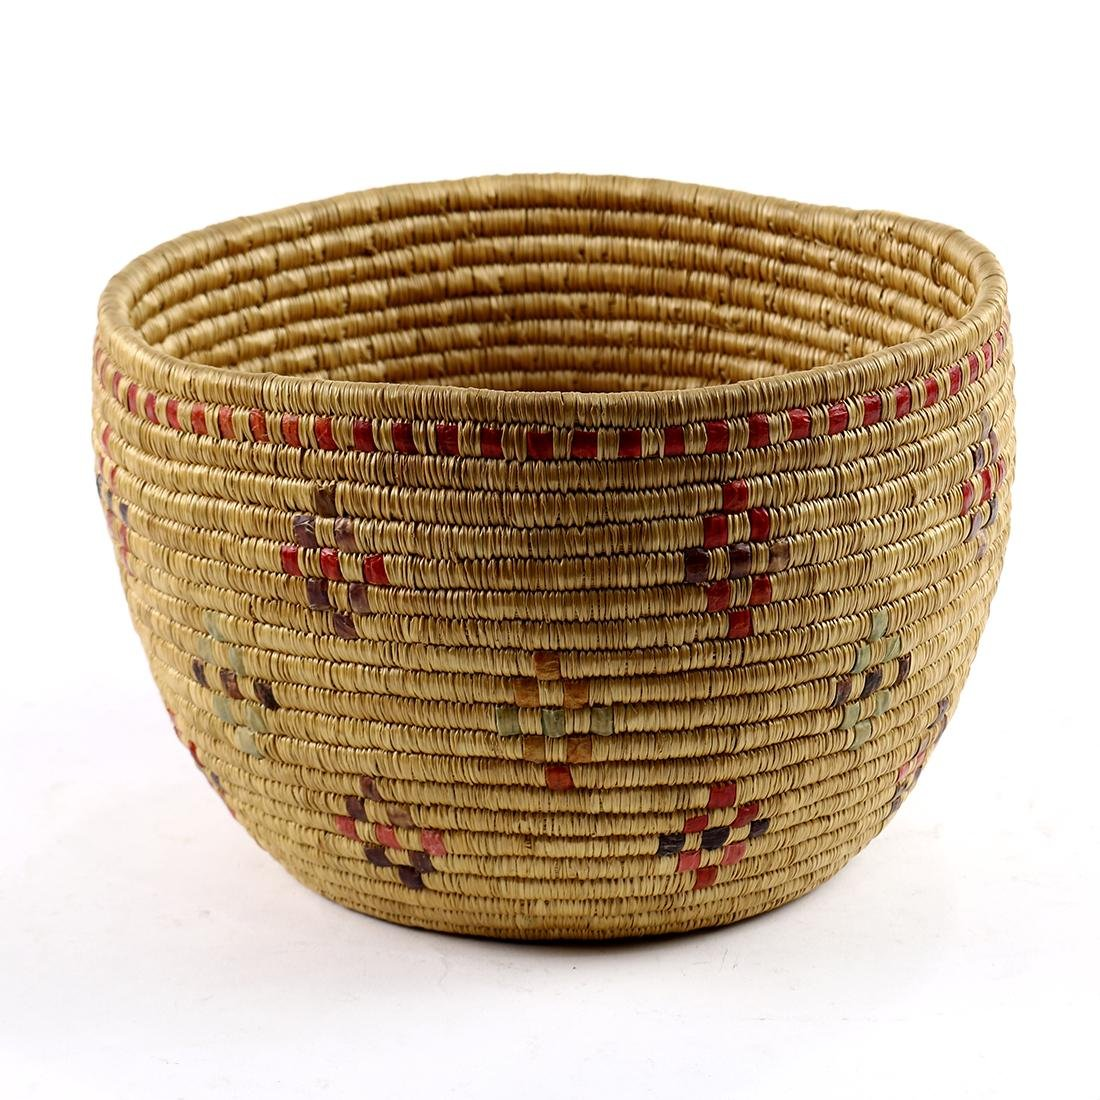 Southwest coiled basket, 20th Century, having dyed